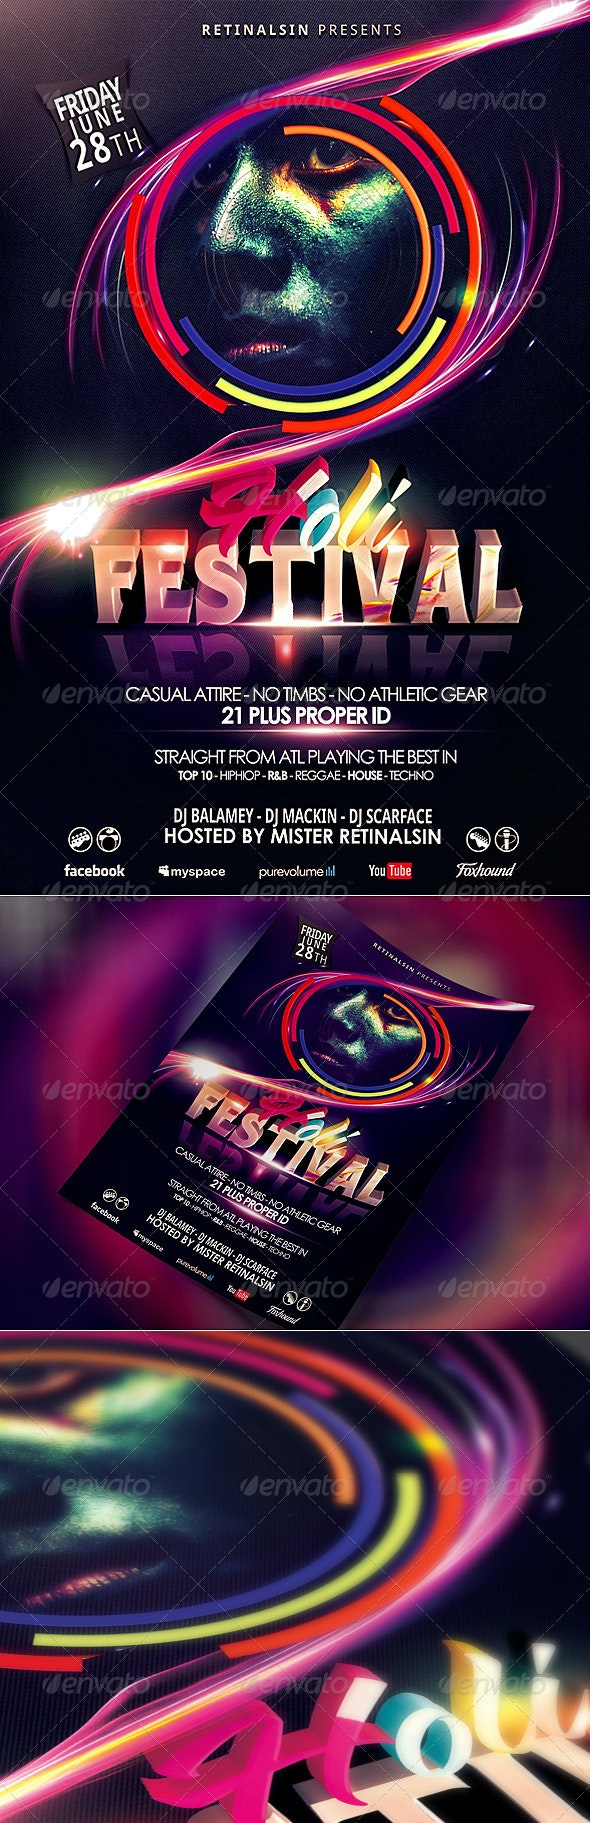 """Holi Festival Flyer Template """"Festival of Colors"""" - Events Flyers"""